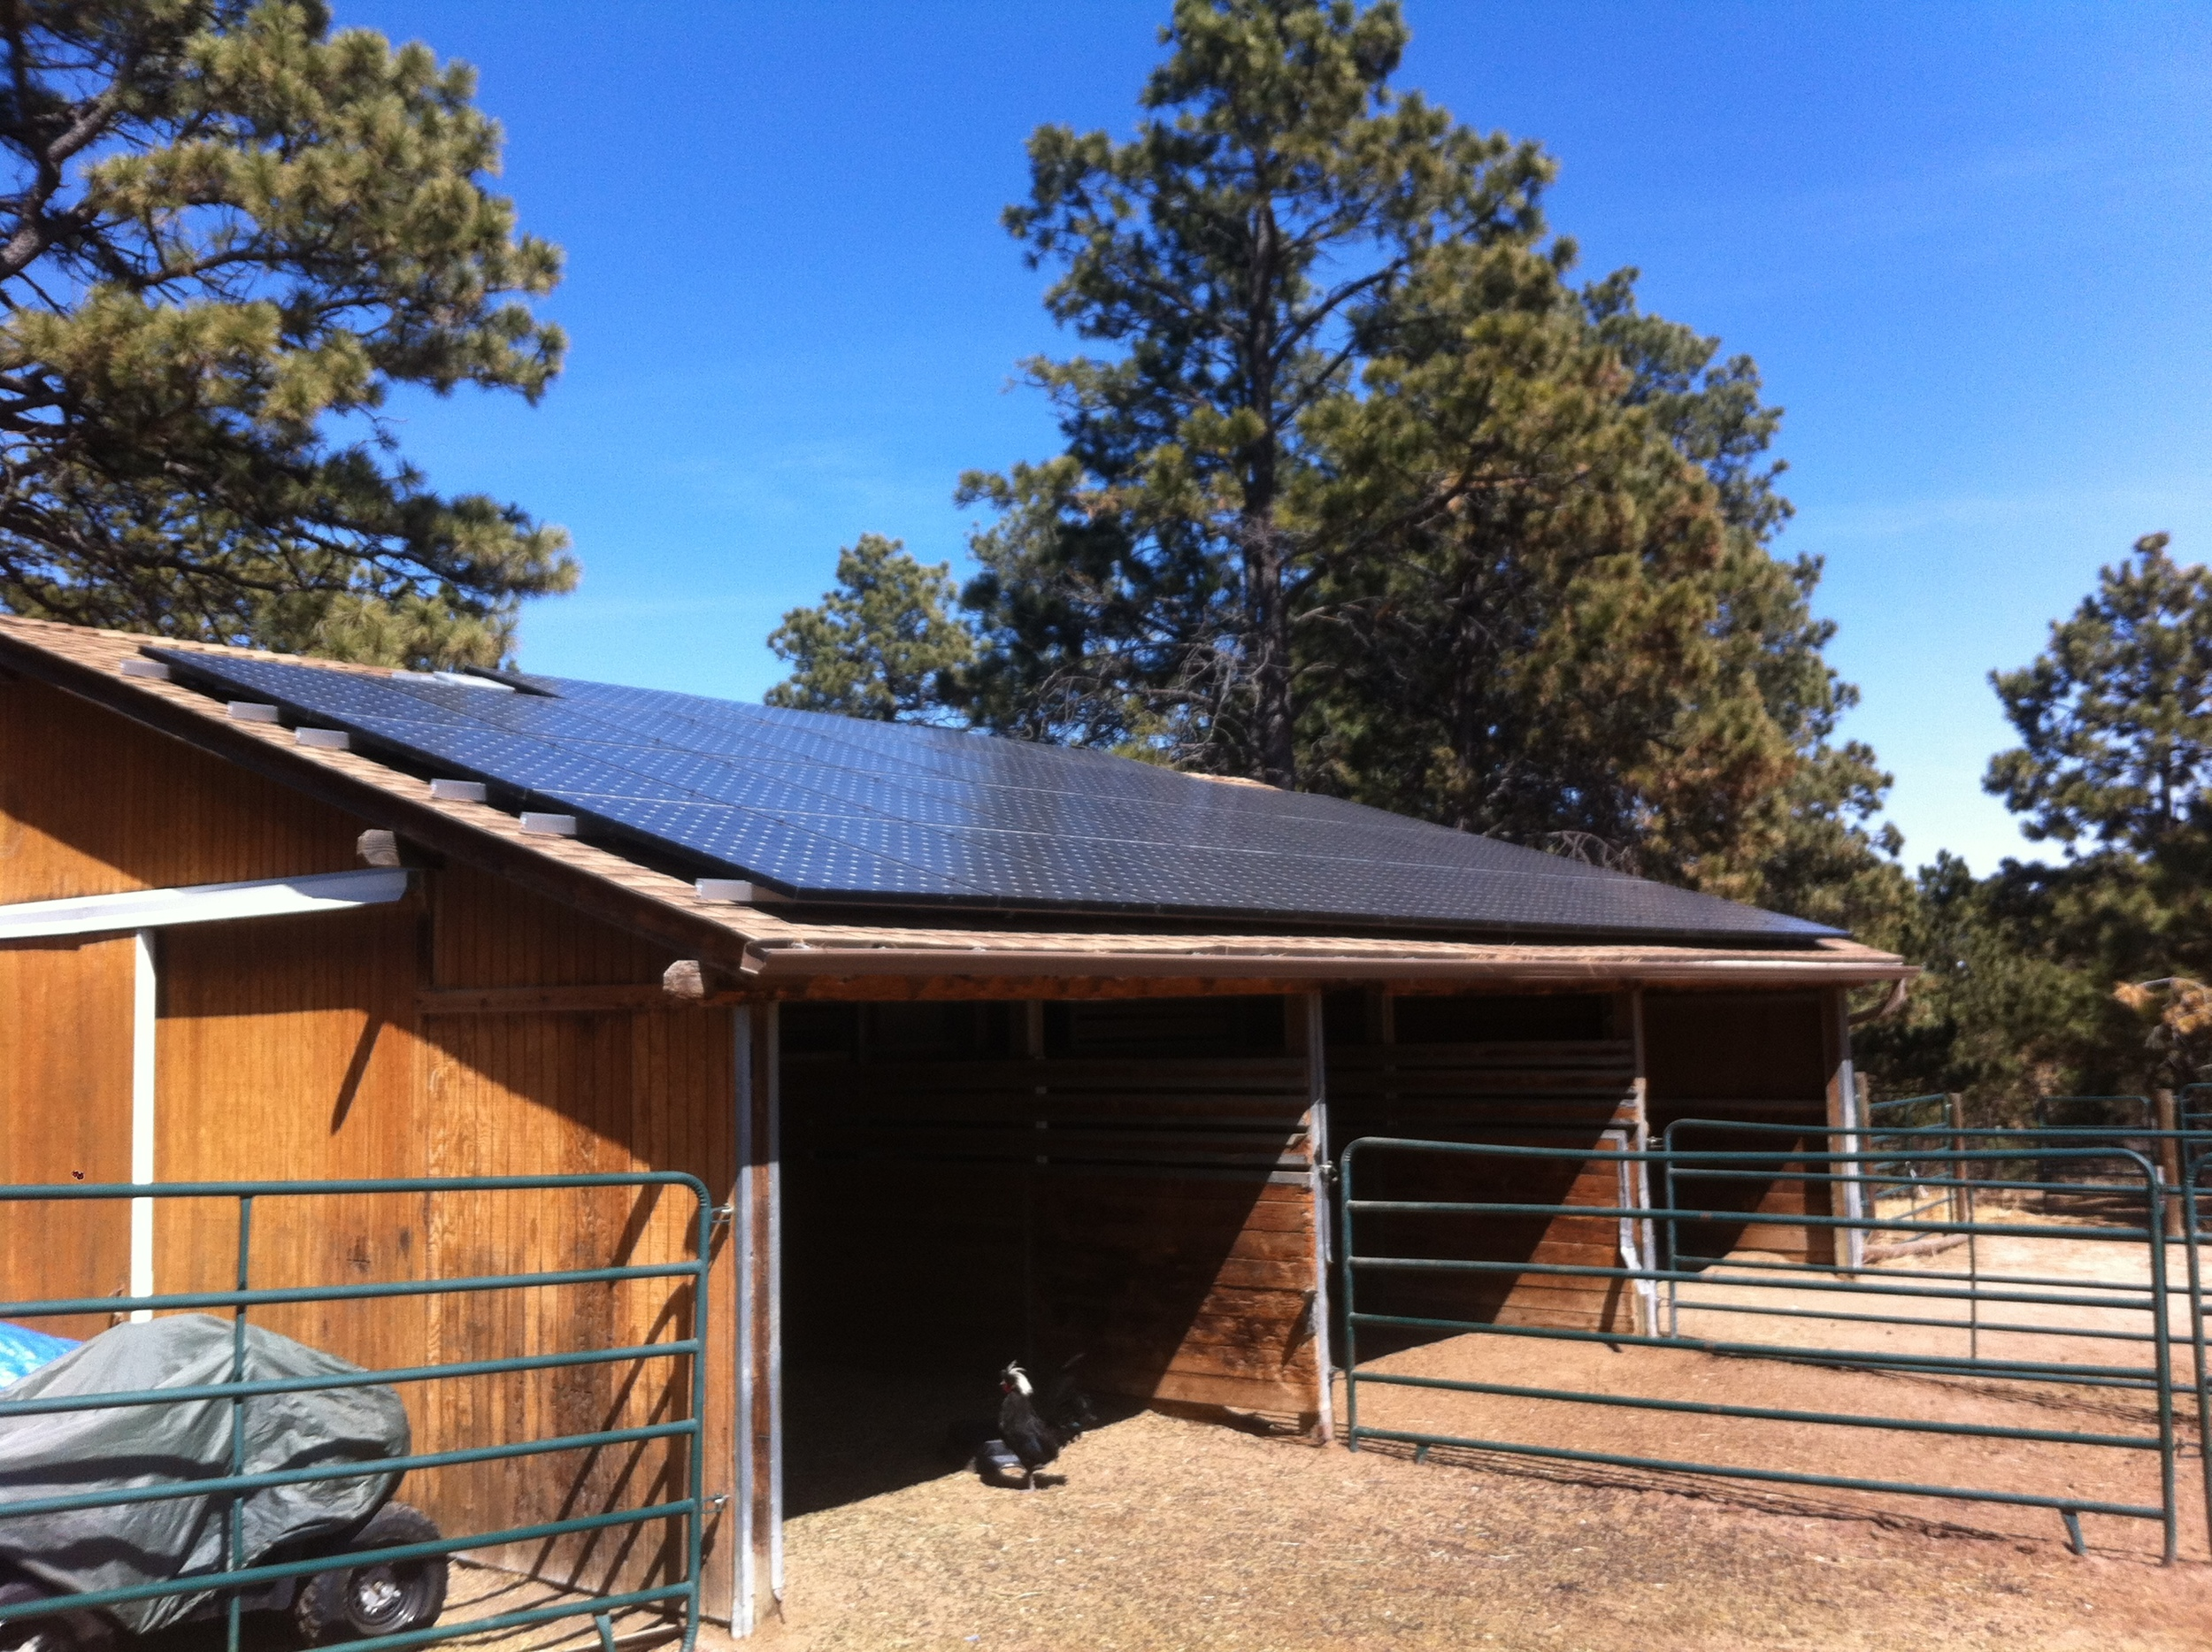 Stable Roof Solar Panels.JPG